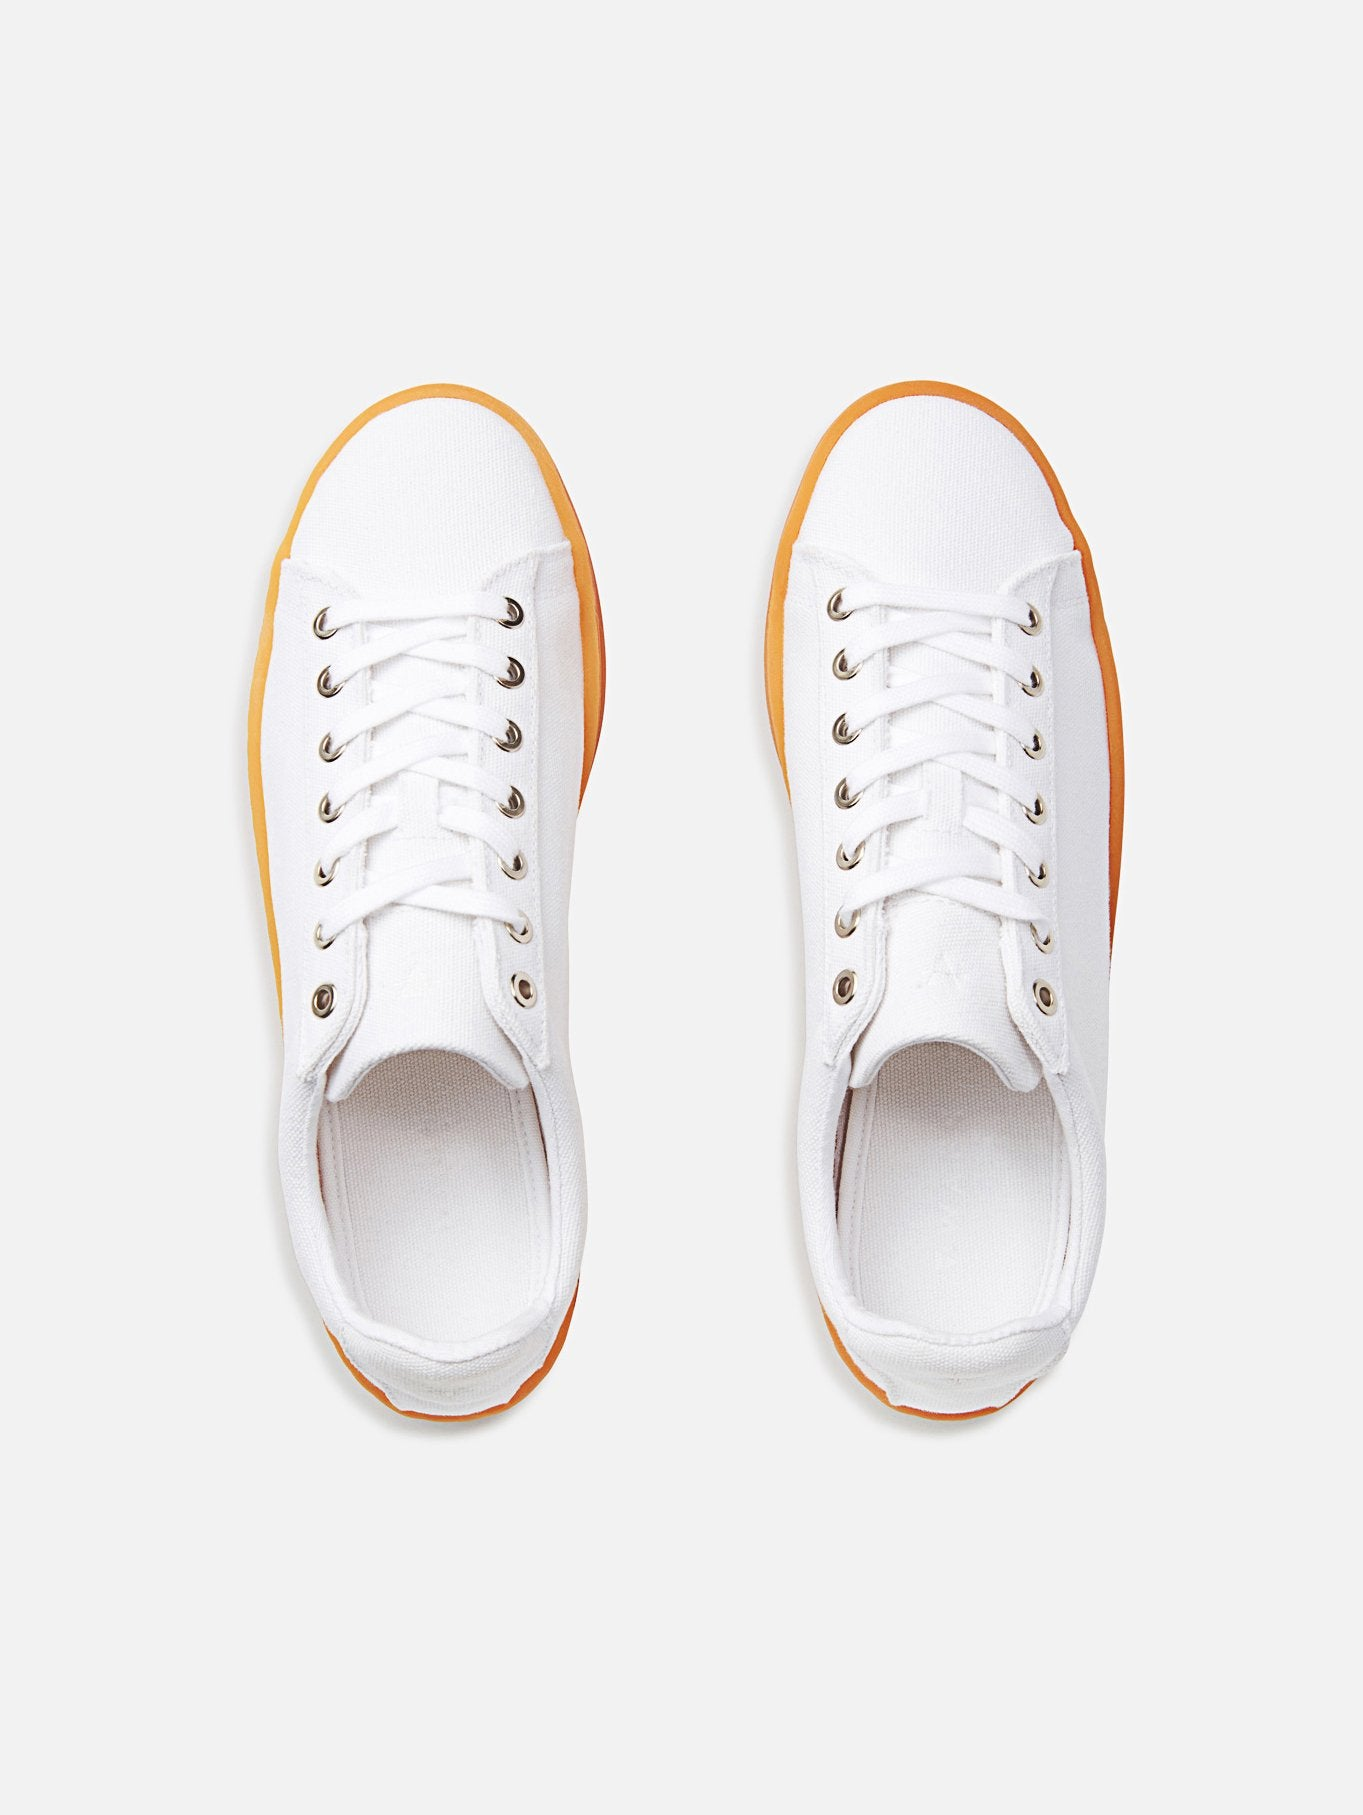 Hope - Vegan White/Lite Canvas Shoeproduct_vendor#product_type